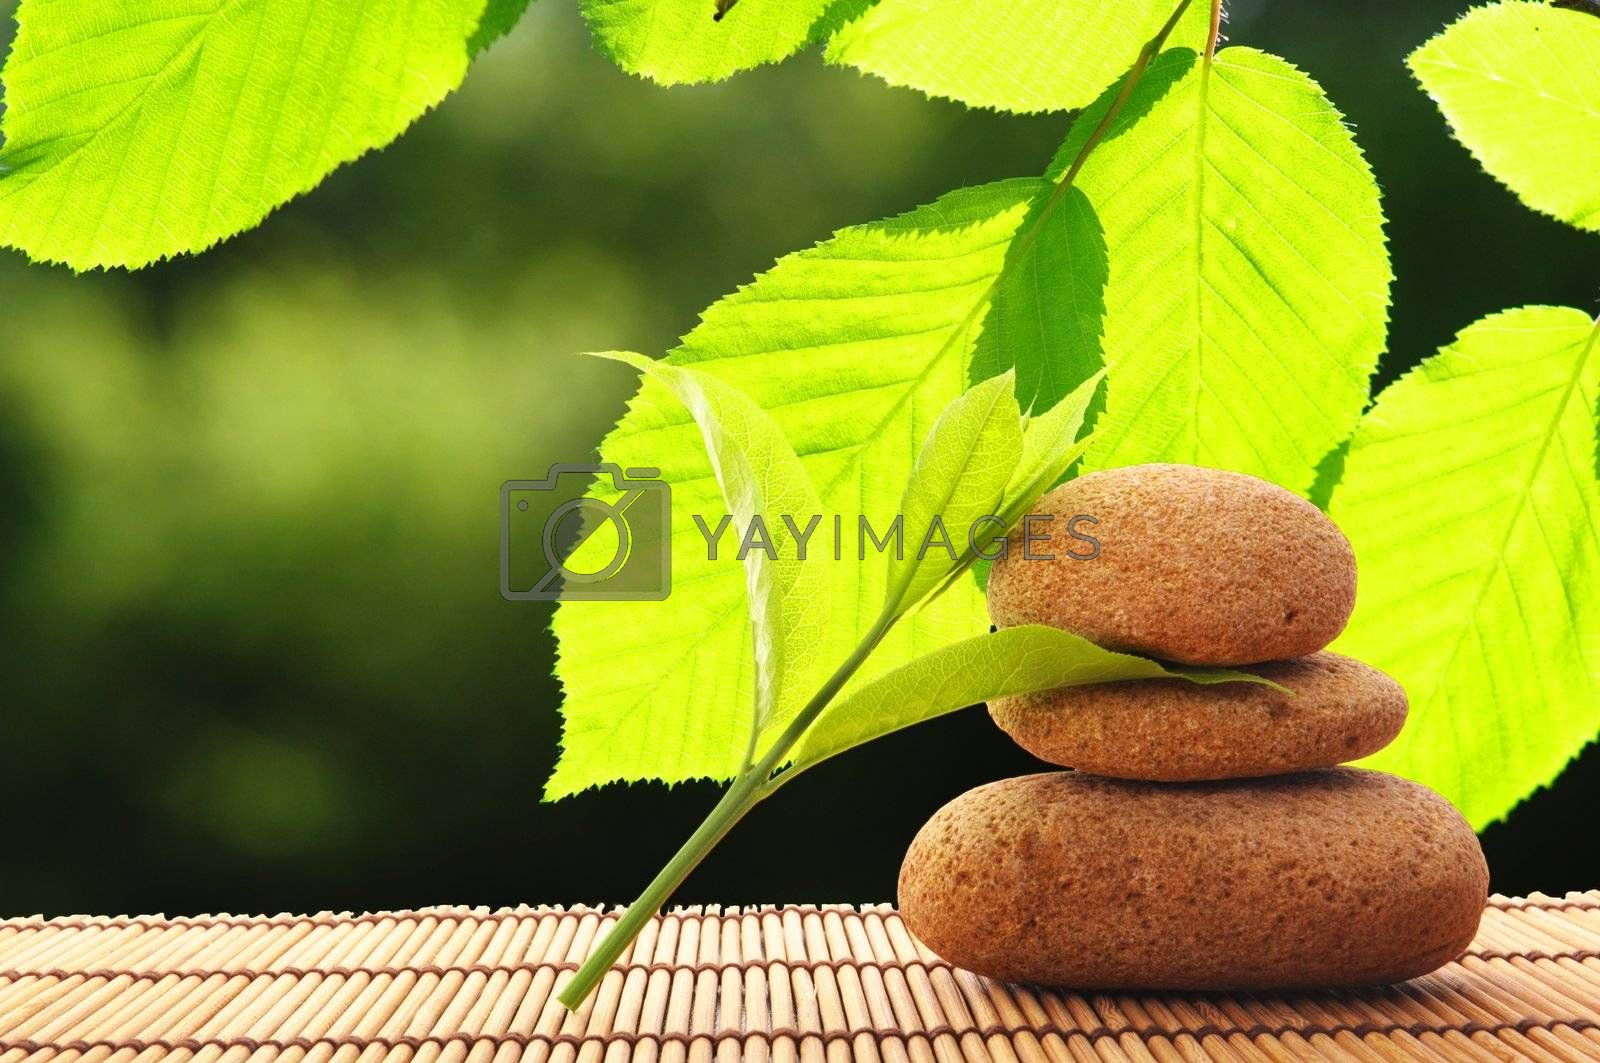 zen stack or tower with green summer leaf showing spa or wellness